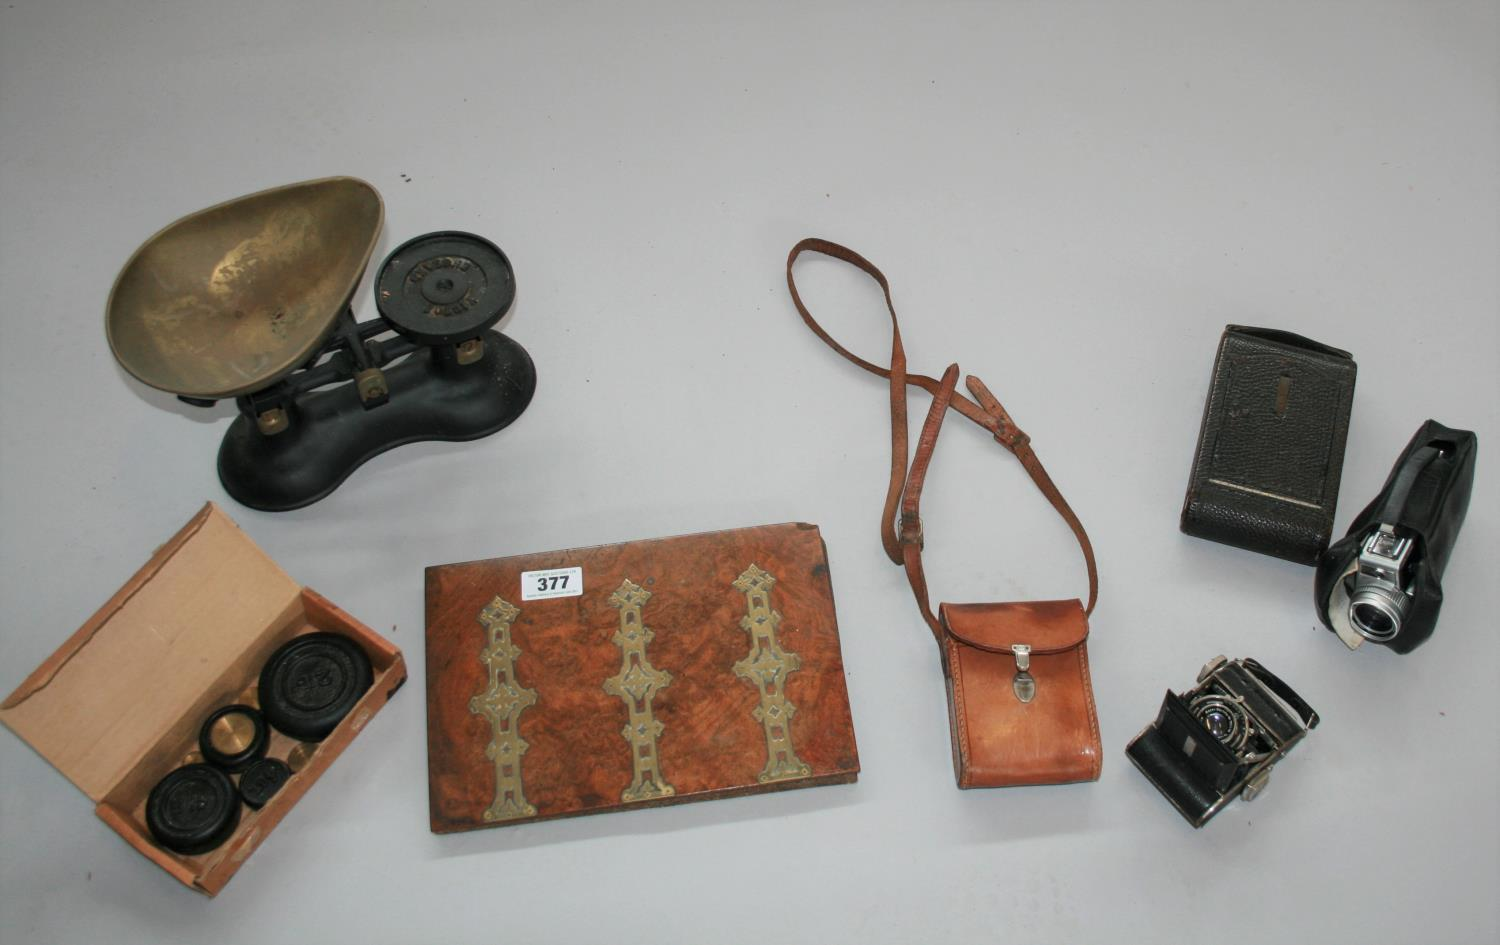 Antique walnut and brass stationary holder, vintage cameras, weighing scales and weights.